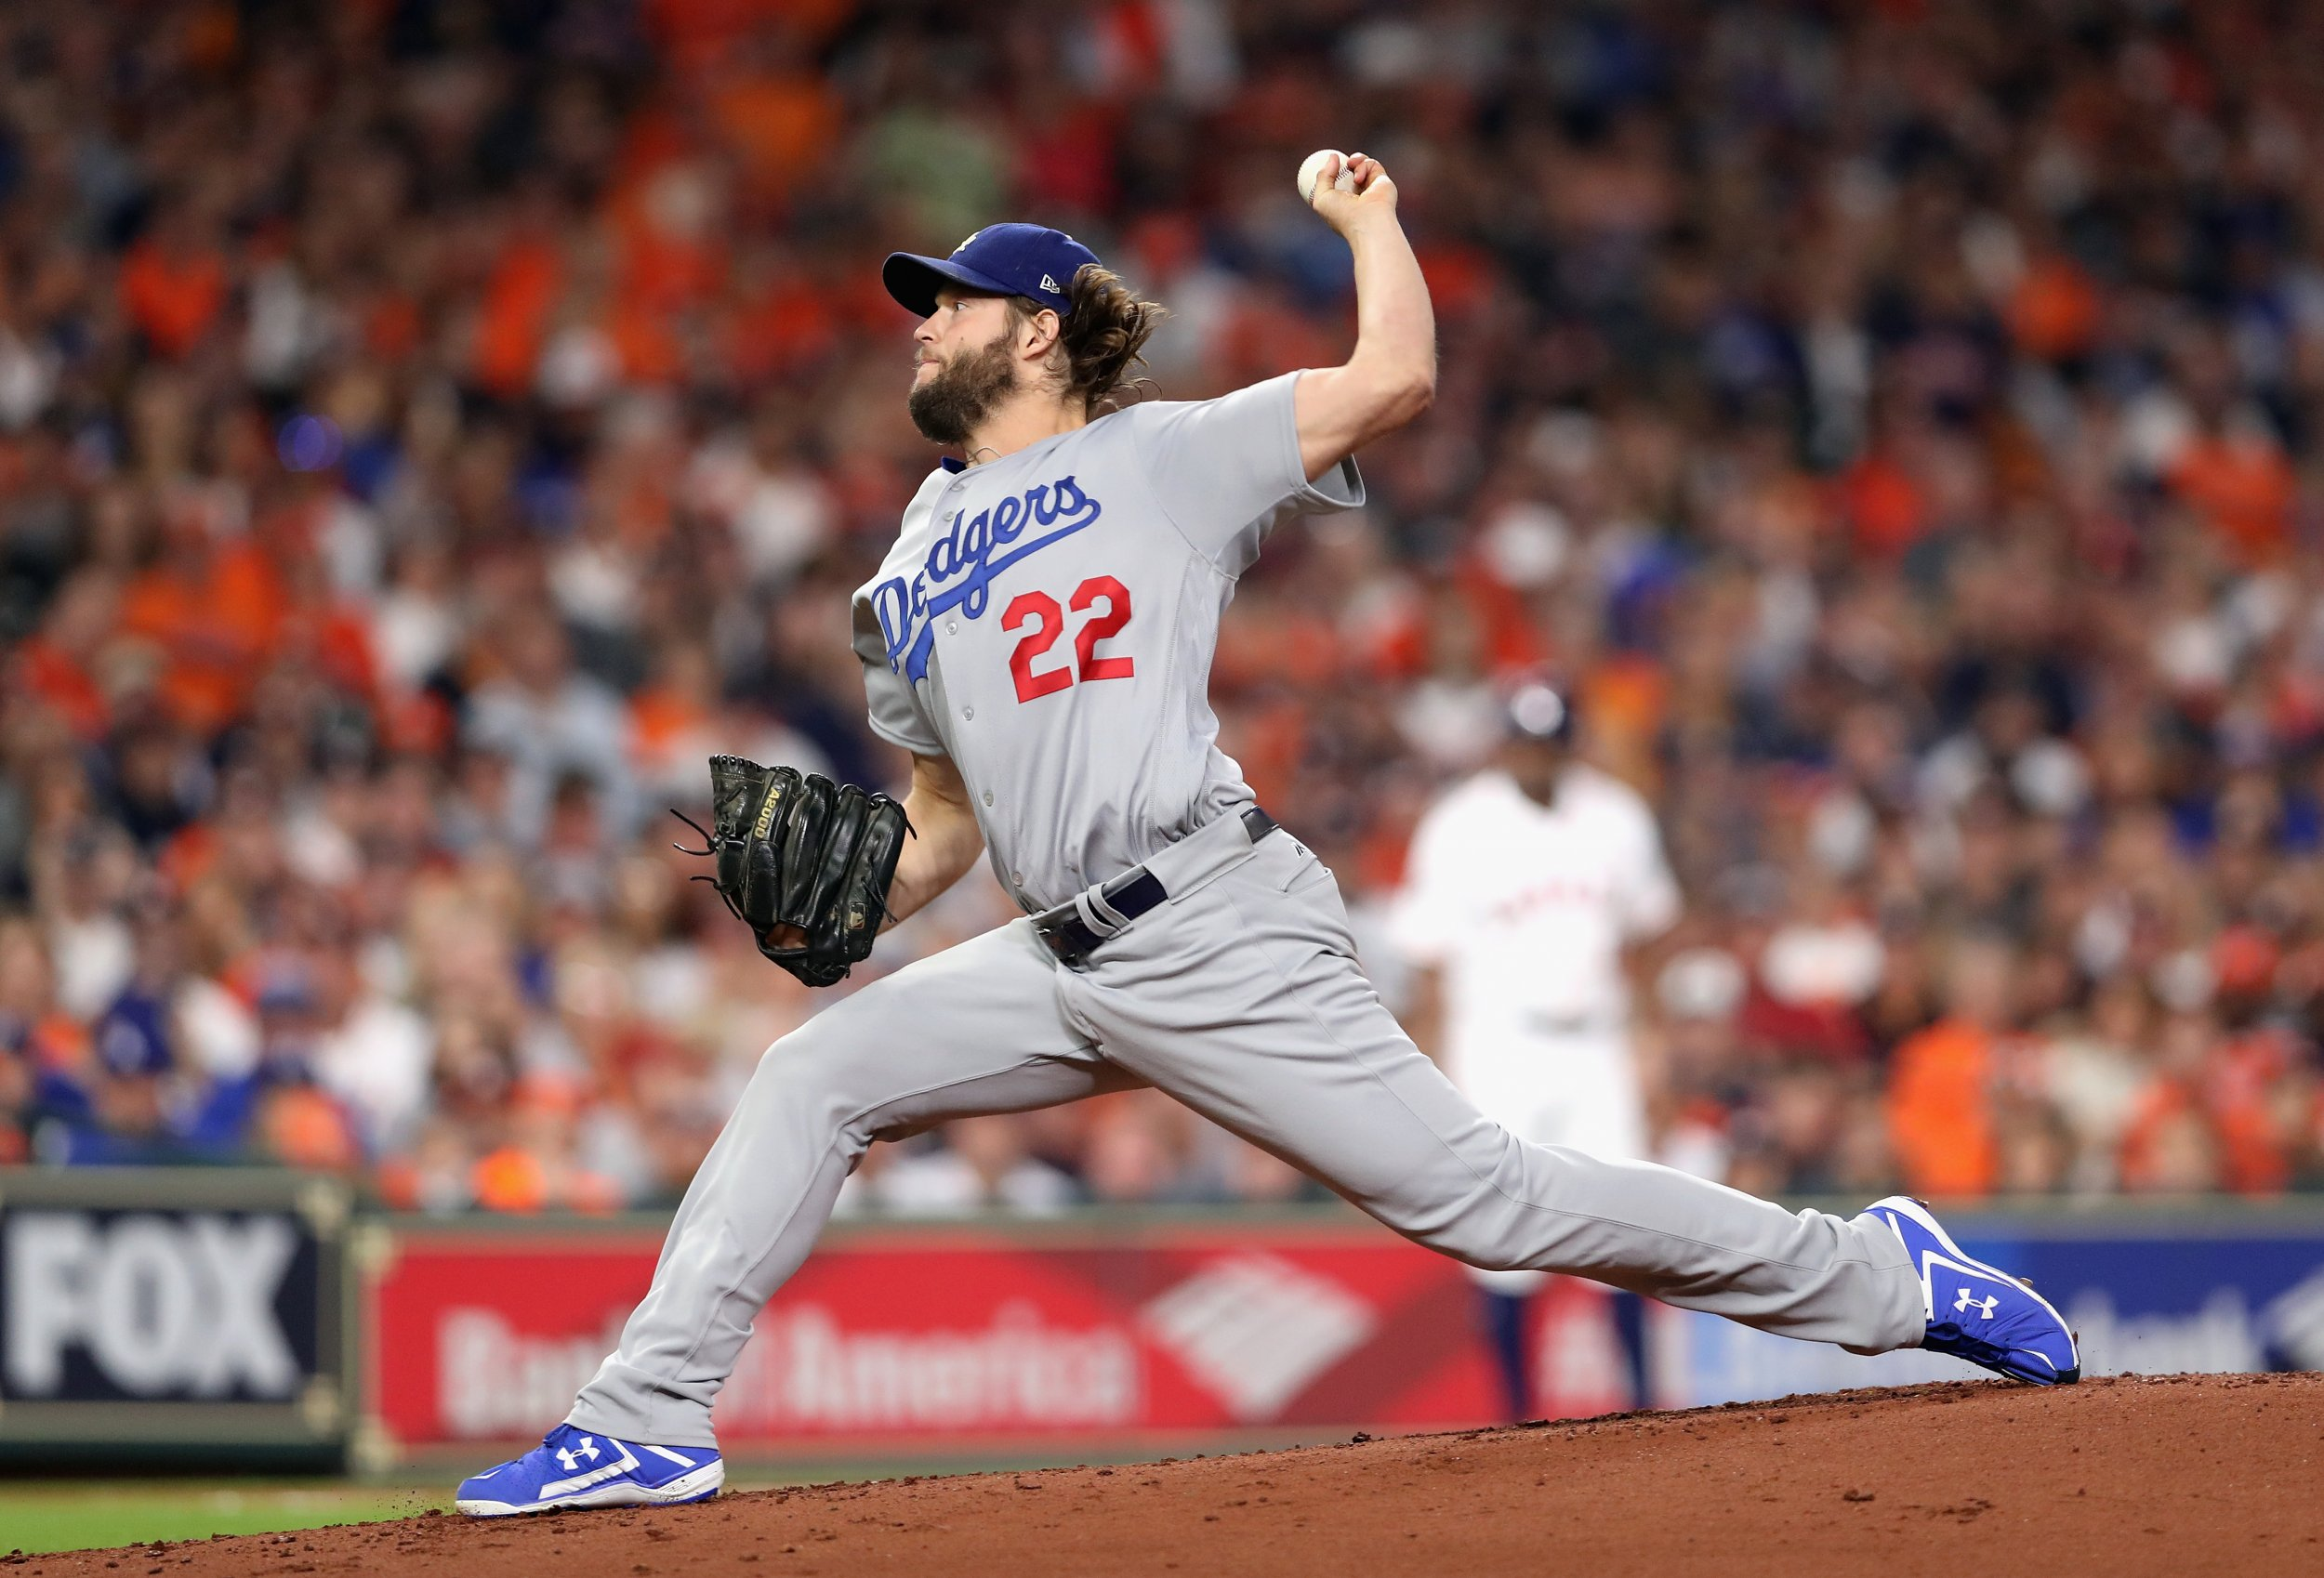 Clayton Kershaw of the Los Angeles Dodgers at Minute Maid Park, Houston, October 29.